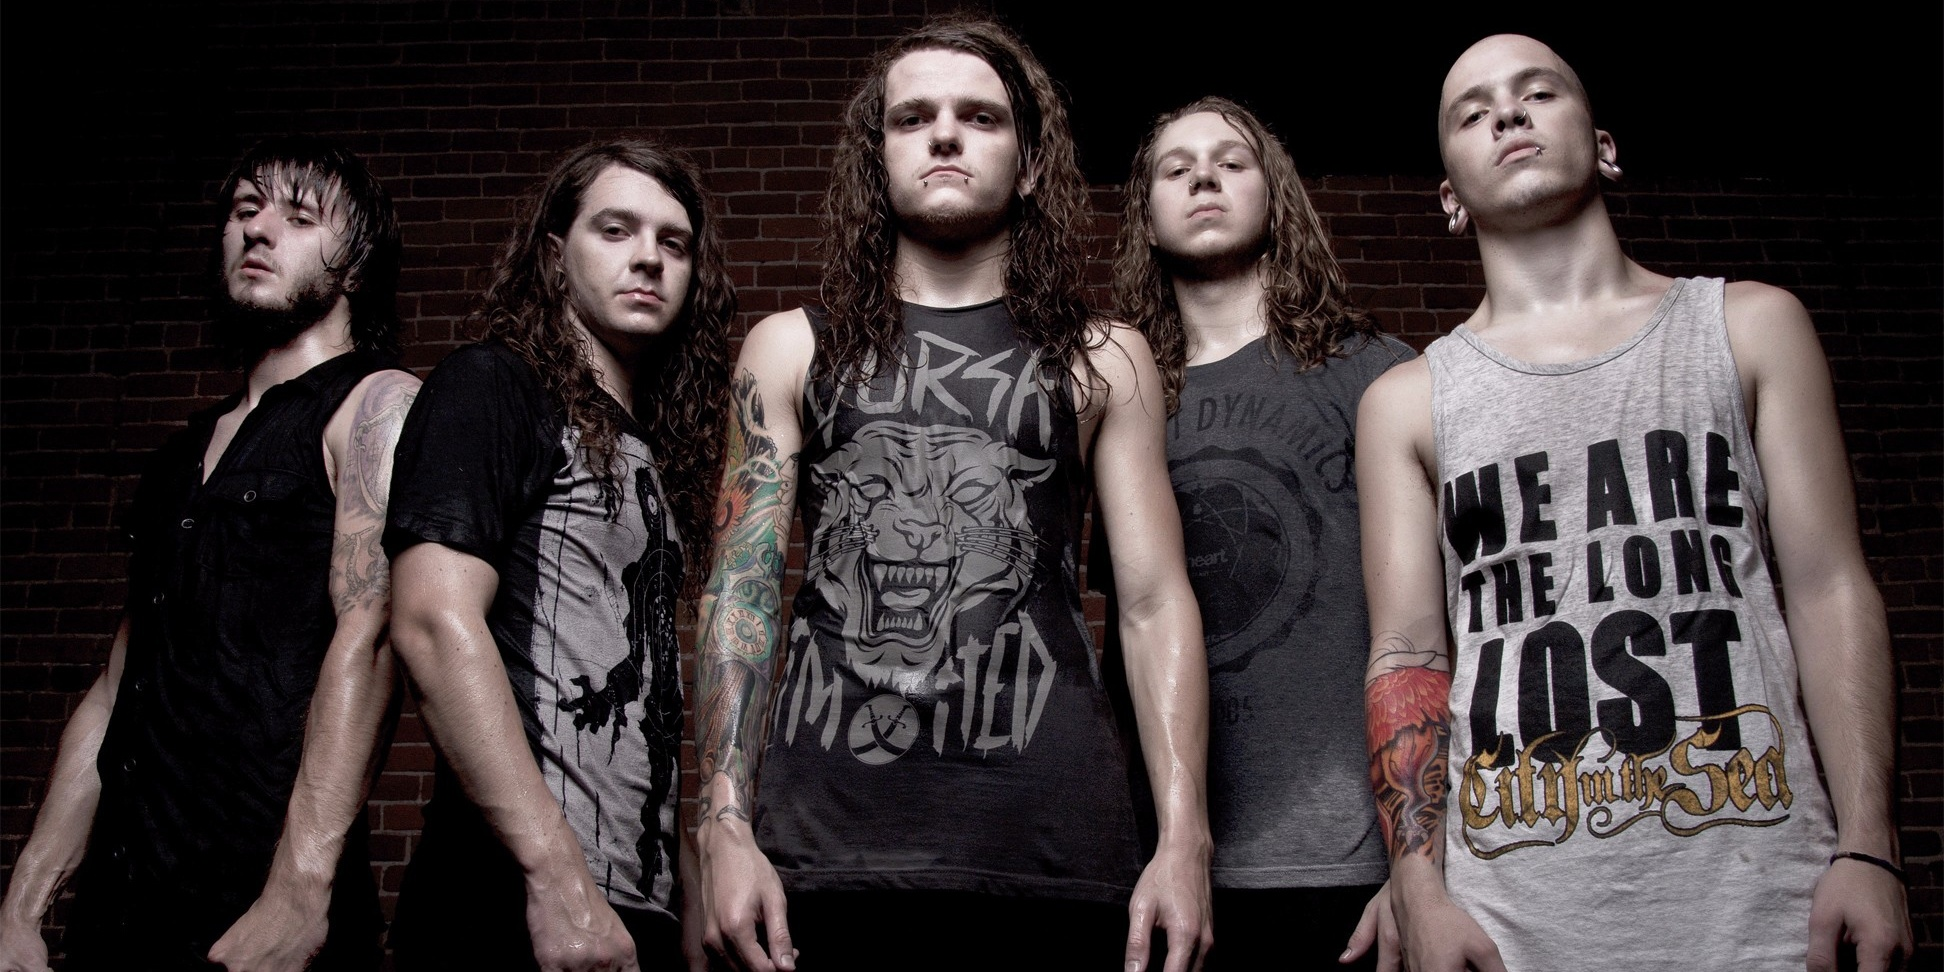 Metalcore maniacs Miss May I to perform in Singapore before the year ends